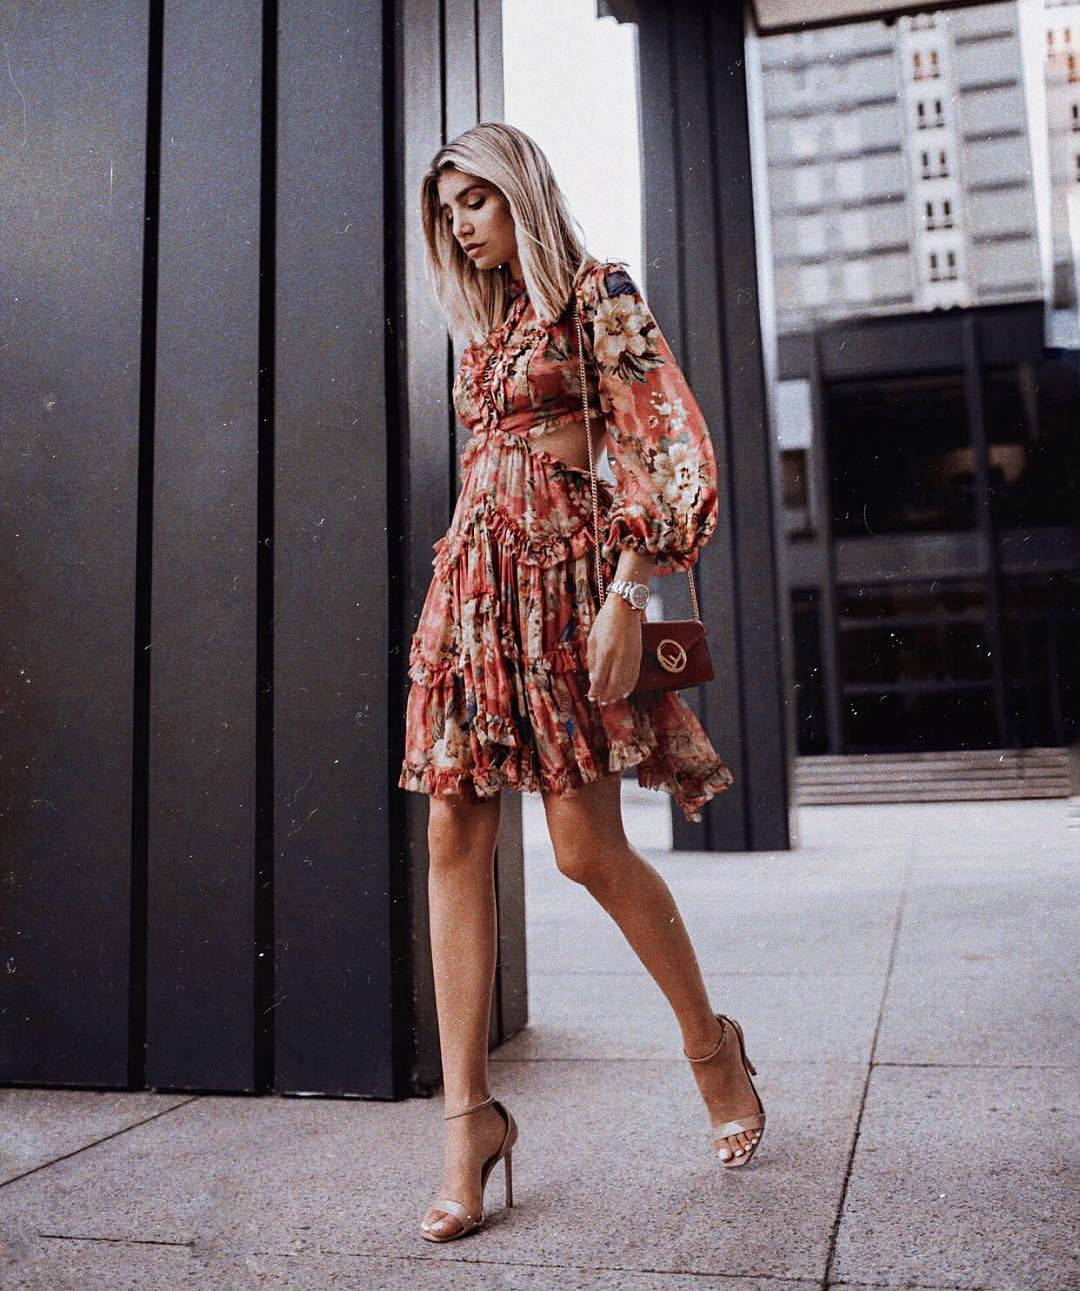 Floral Boho Dress With Side Cut Outs And Puff Sleeves 2020